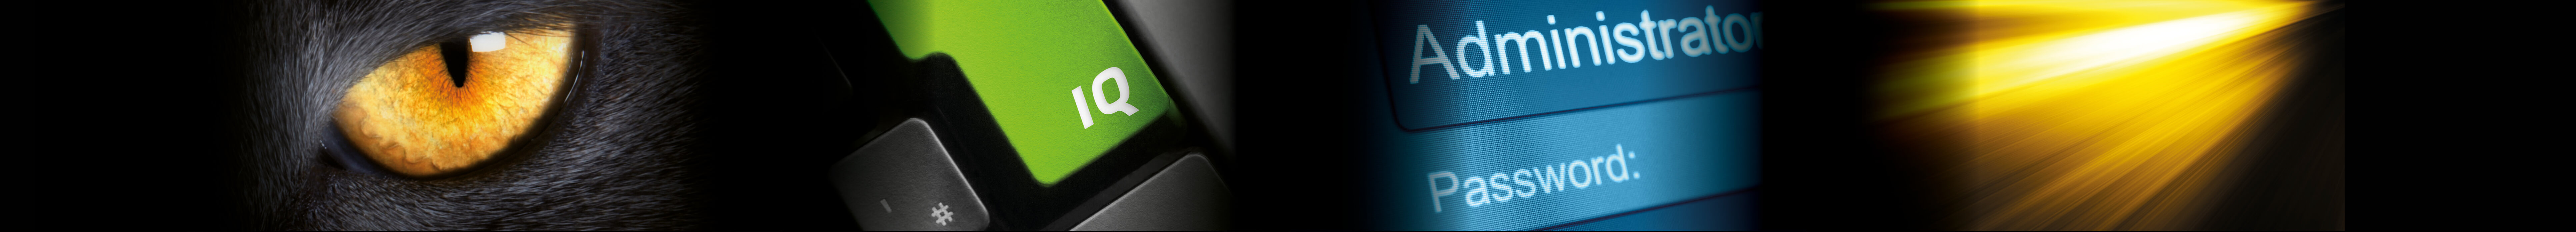 Softsolution Trenner